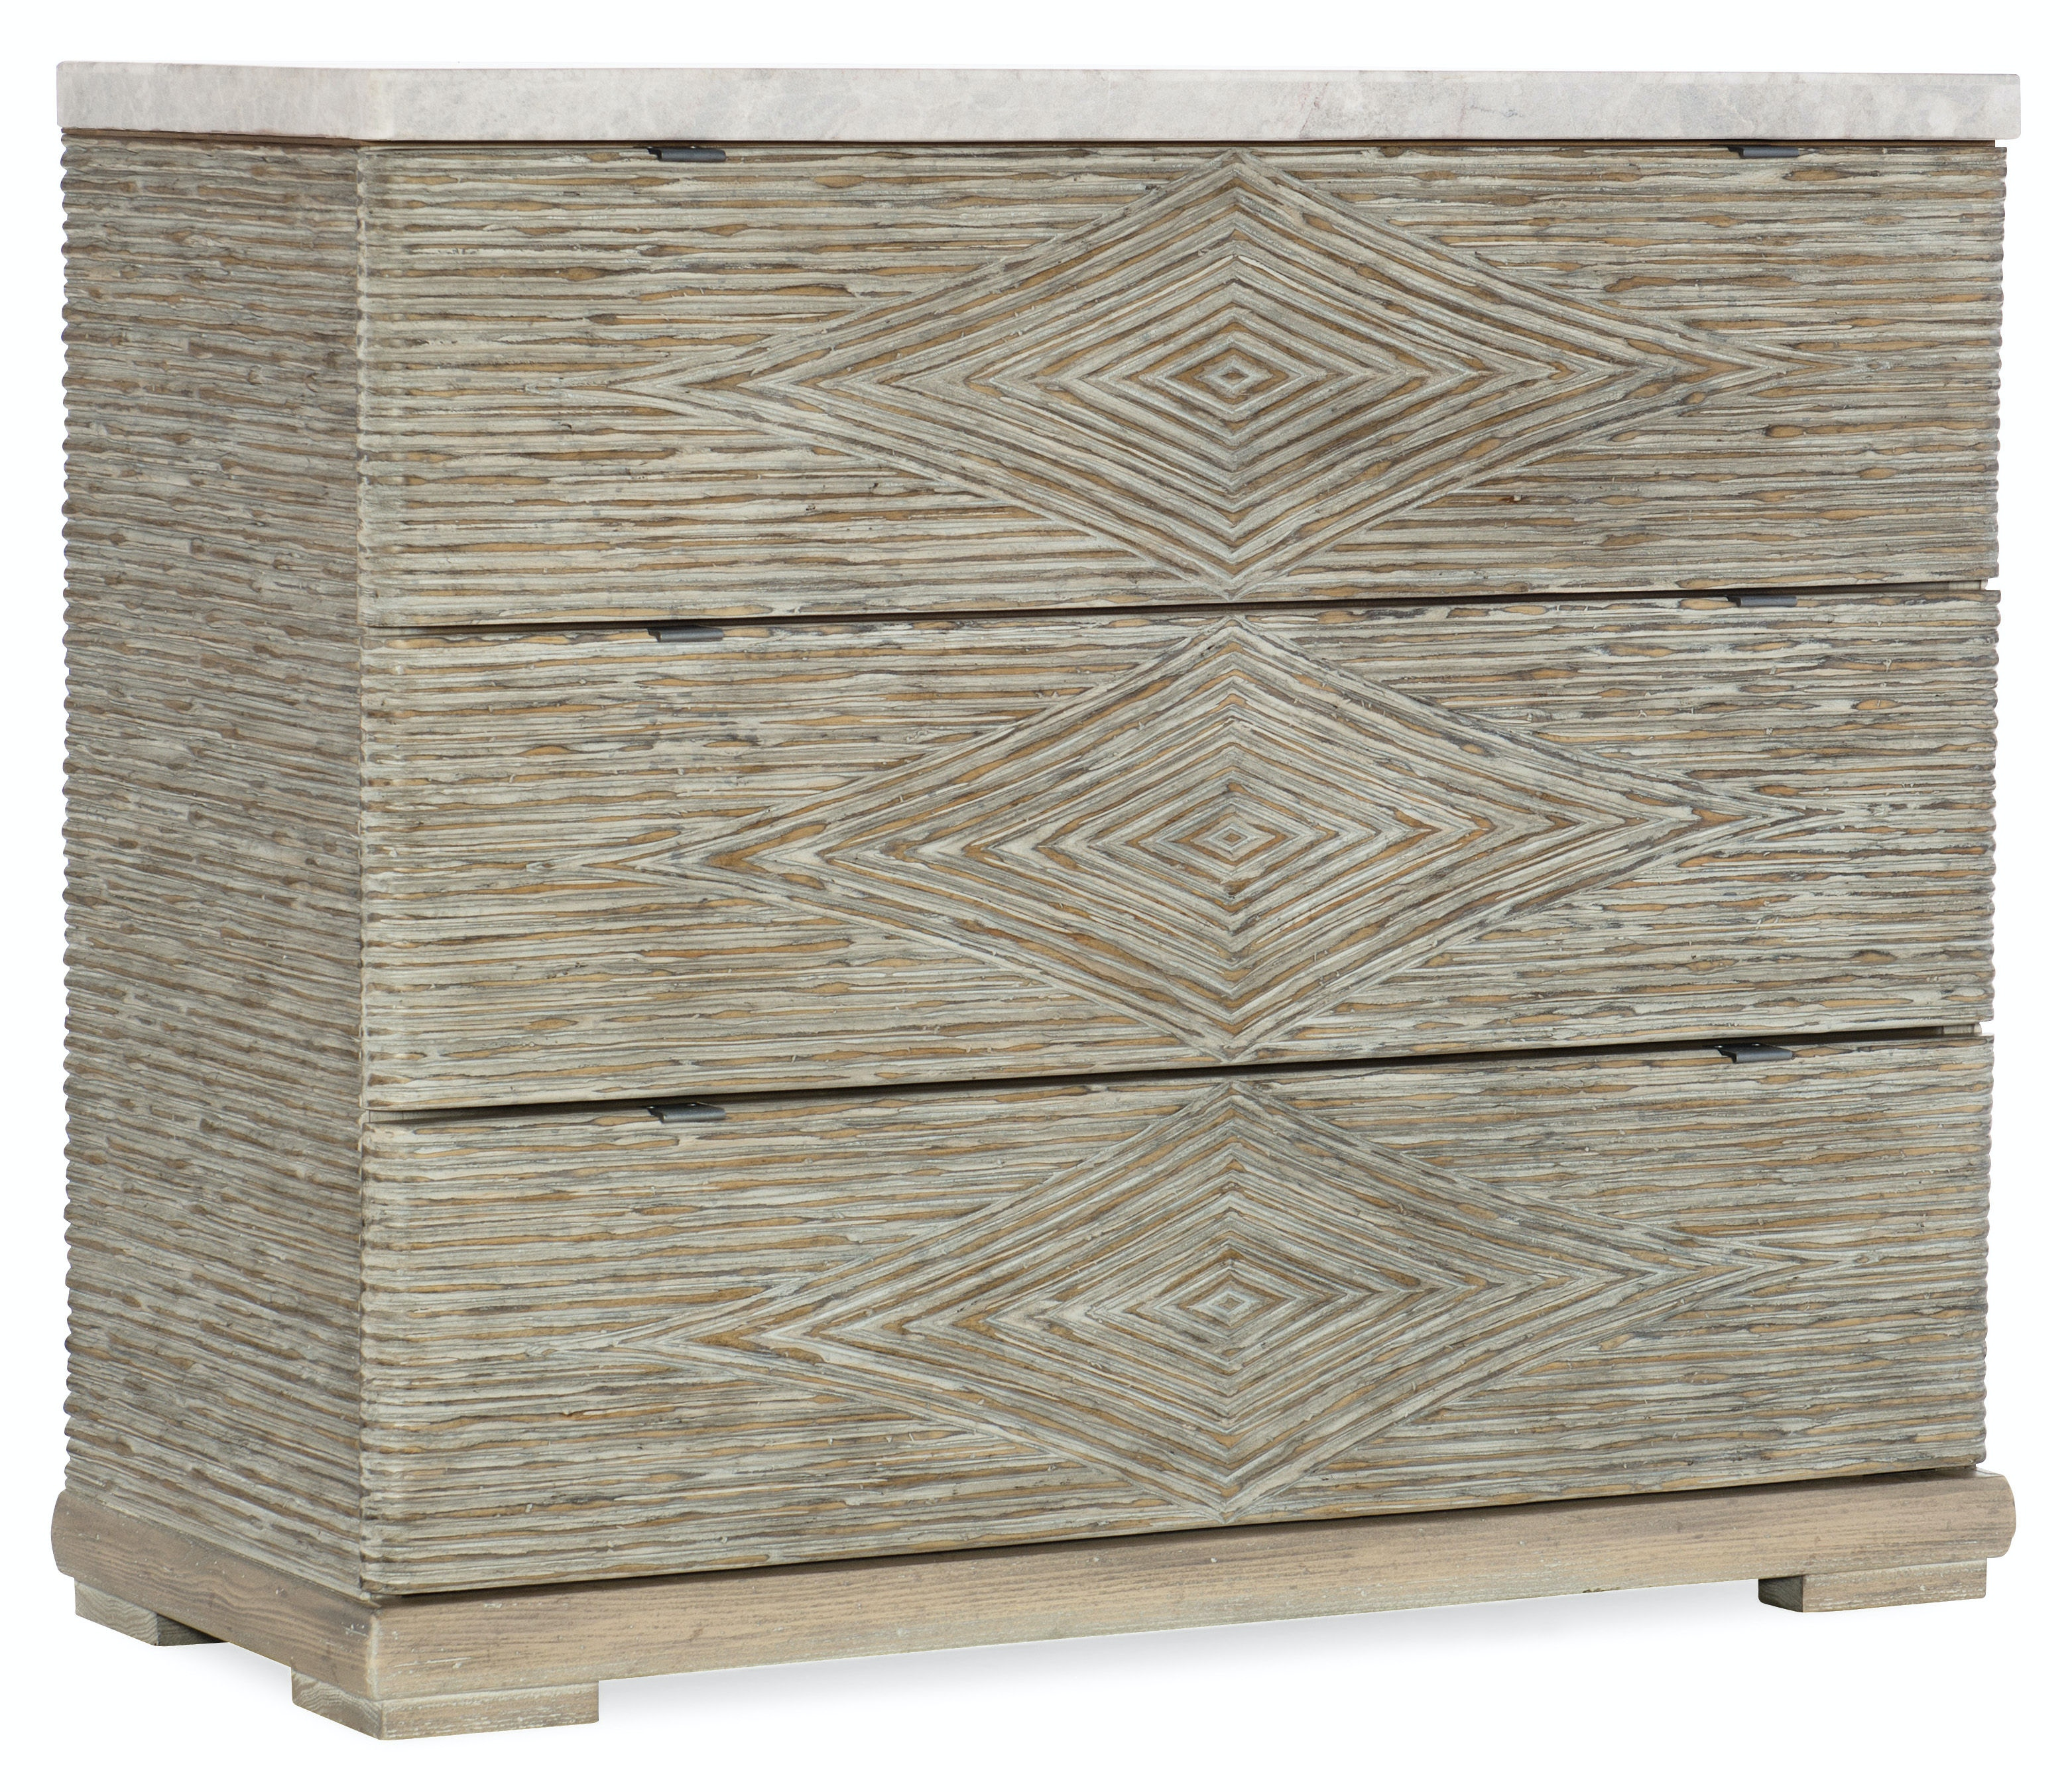 Credenza Console : Living room accent chairs accents console tables credenza cabinets